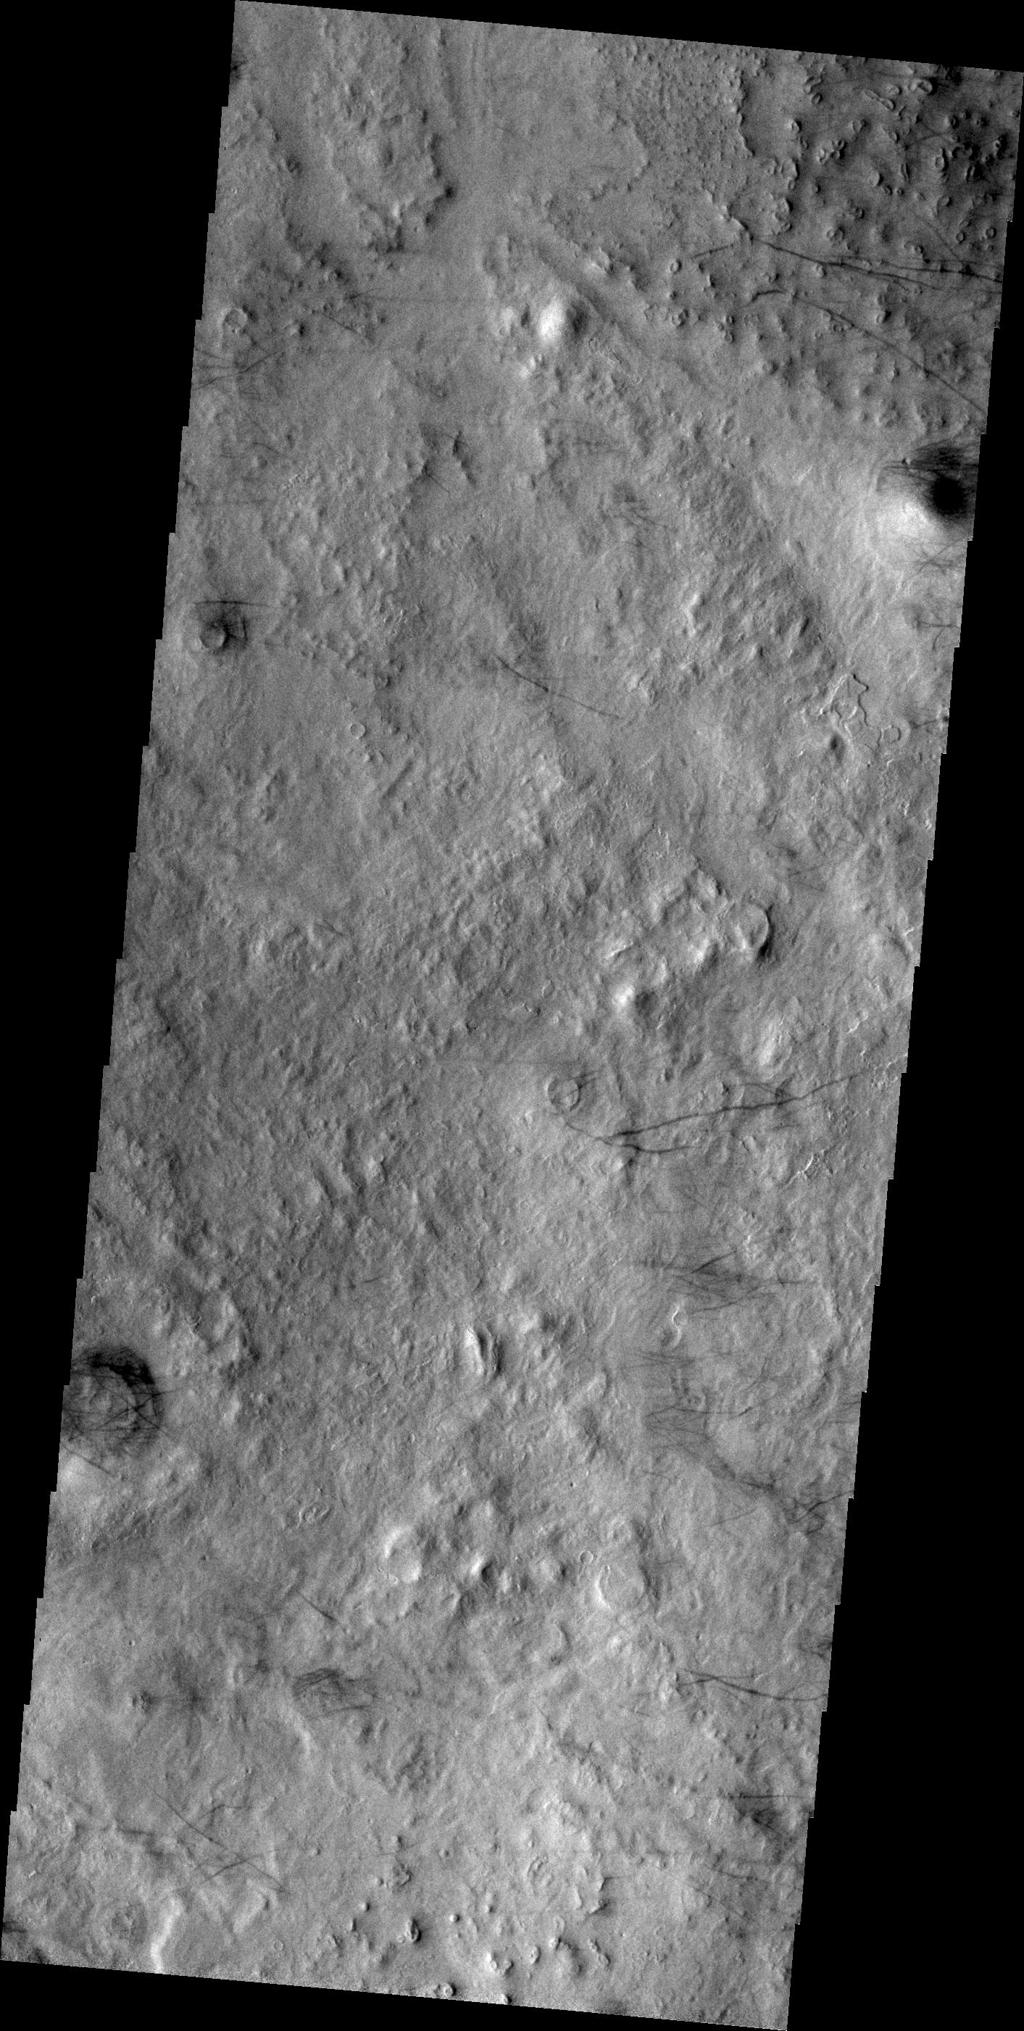 The dark lines in this image from NASA's Mars Odyssey are the tracks of dust devils in this region of Arcadia Plainitia. As the swirling winds move along the surface, they remove the dust cover, revealing the darker rock beneath.